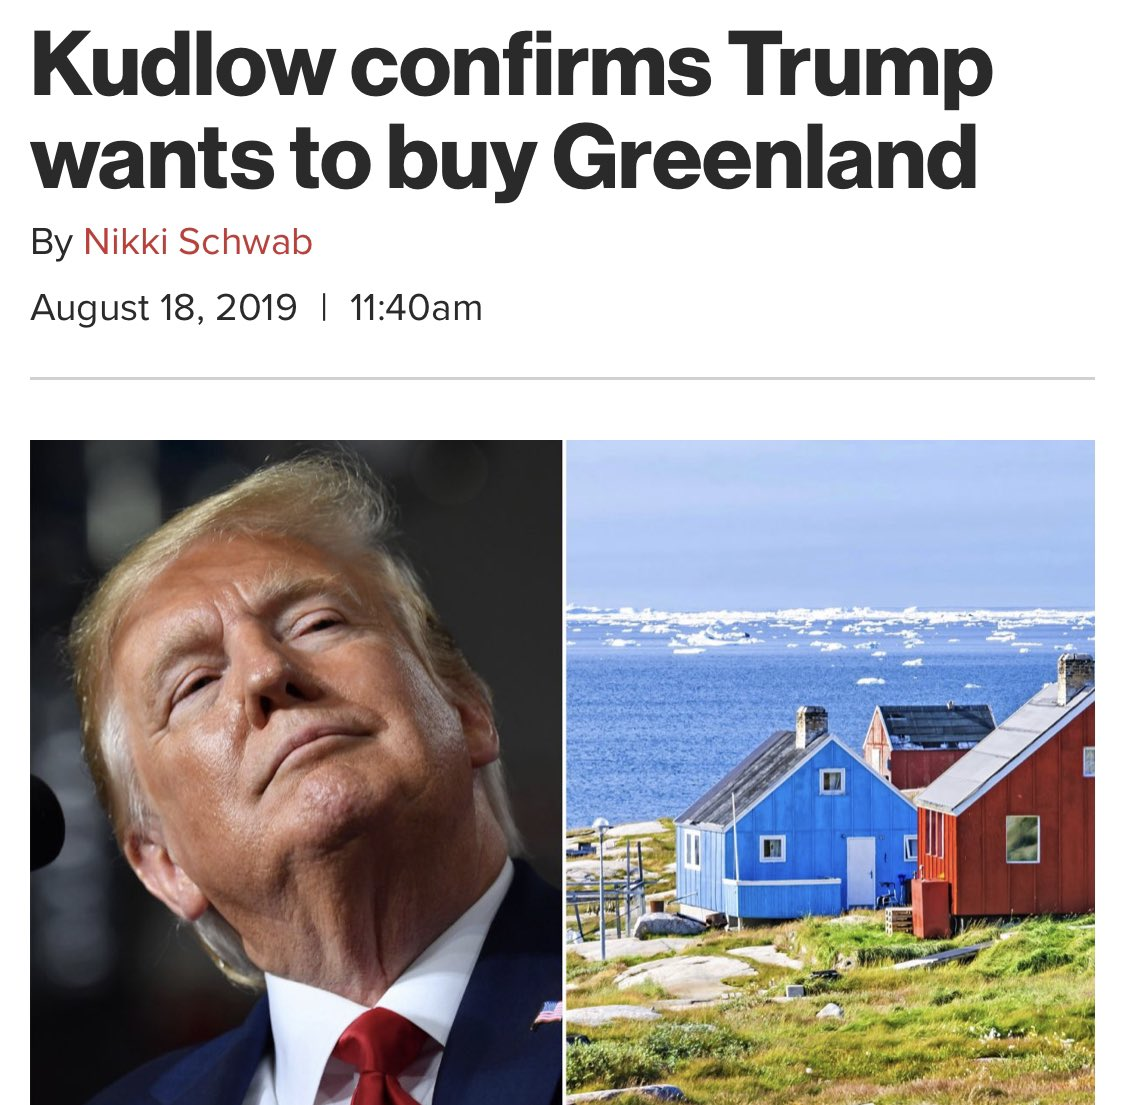 Thule Air Base - Trump to Purchase Greenland